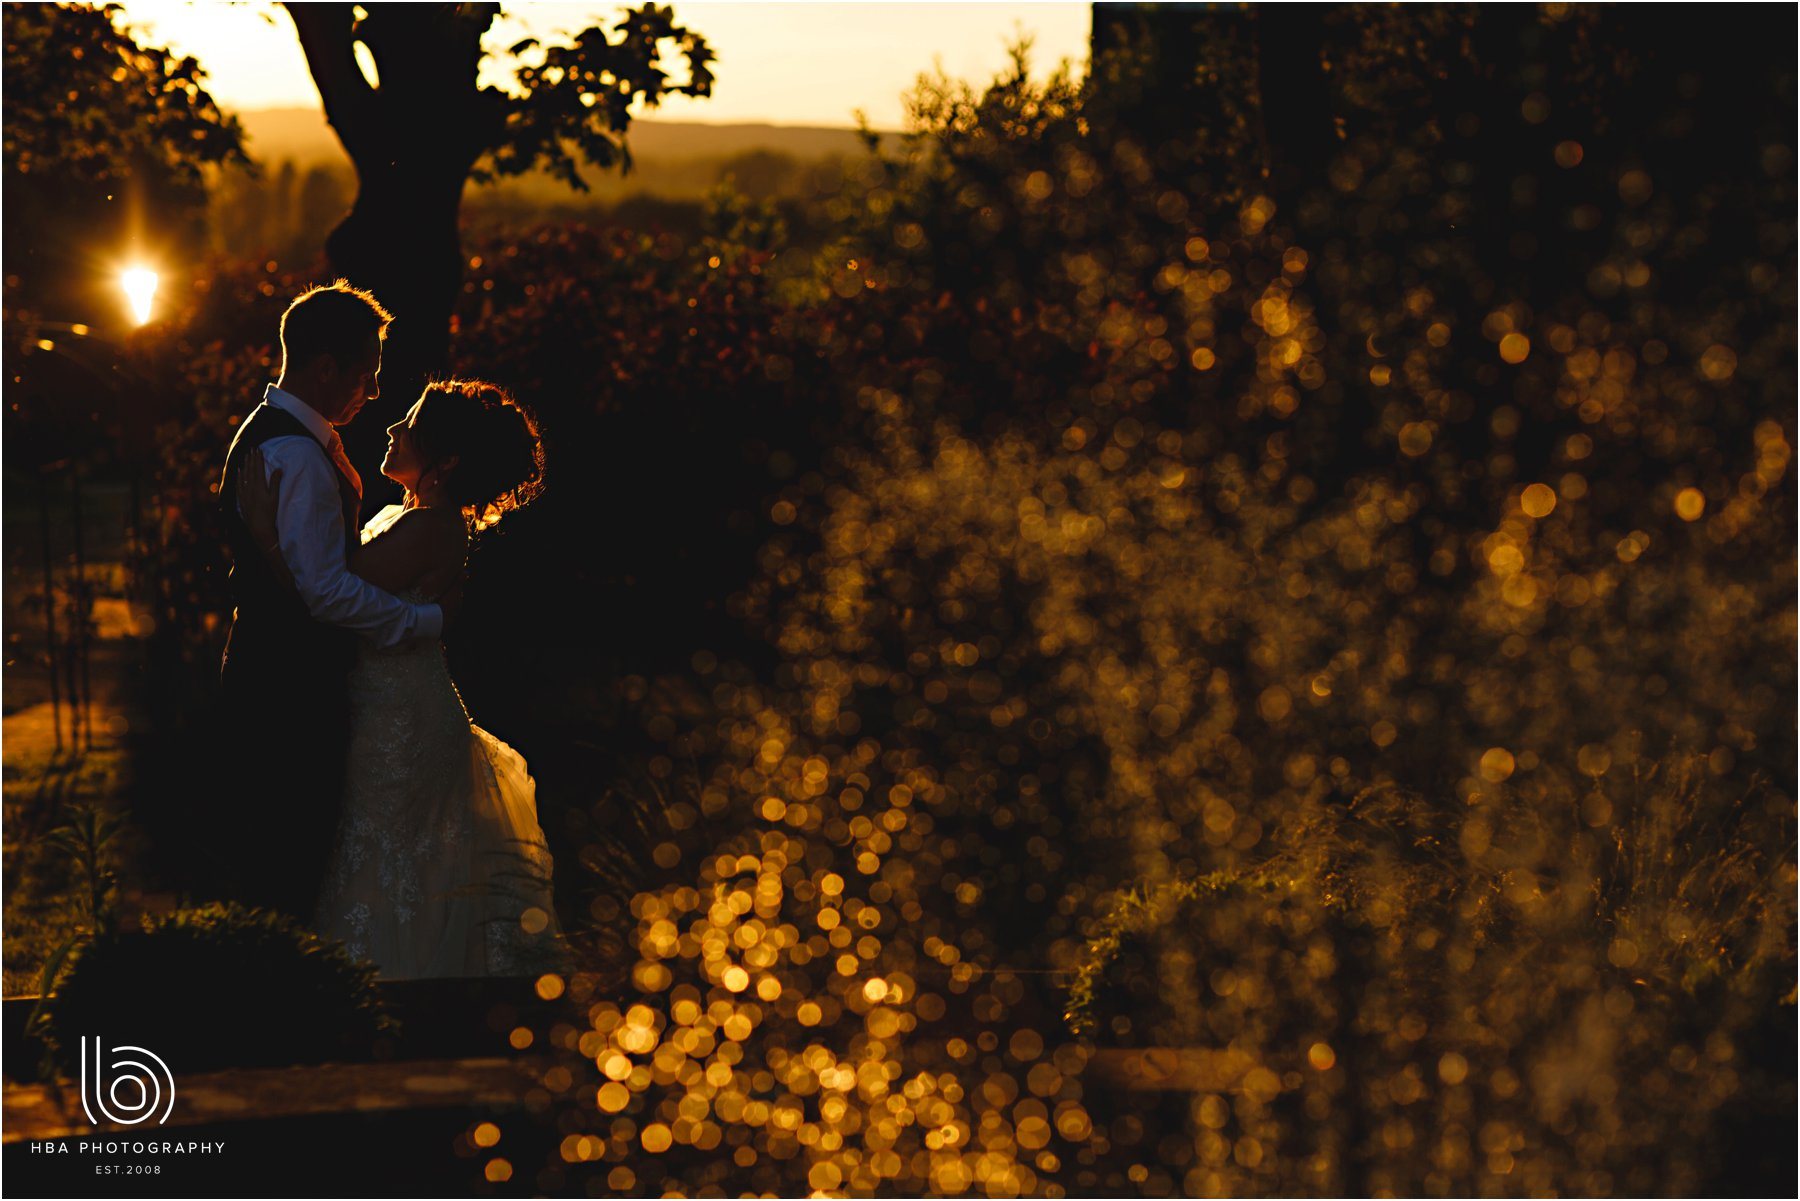 the bride & groom in the golden hour sun